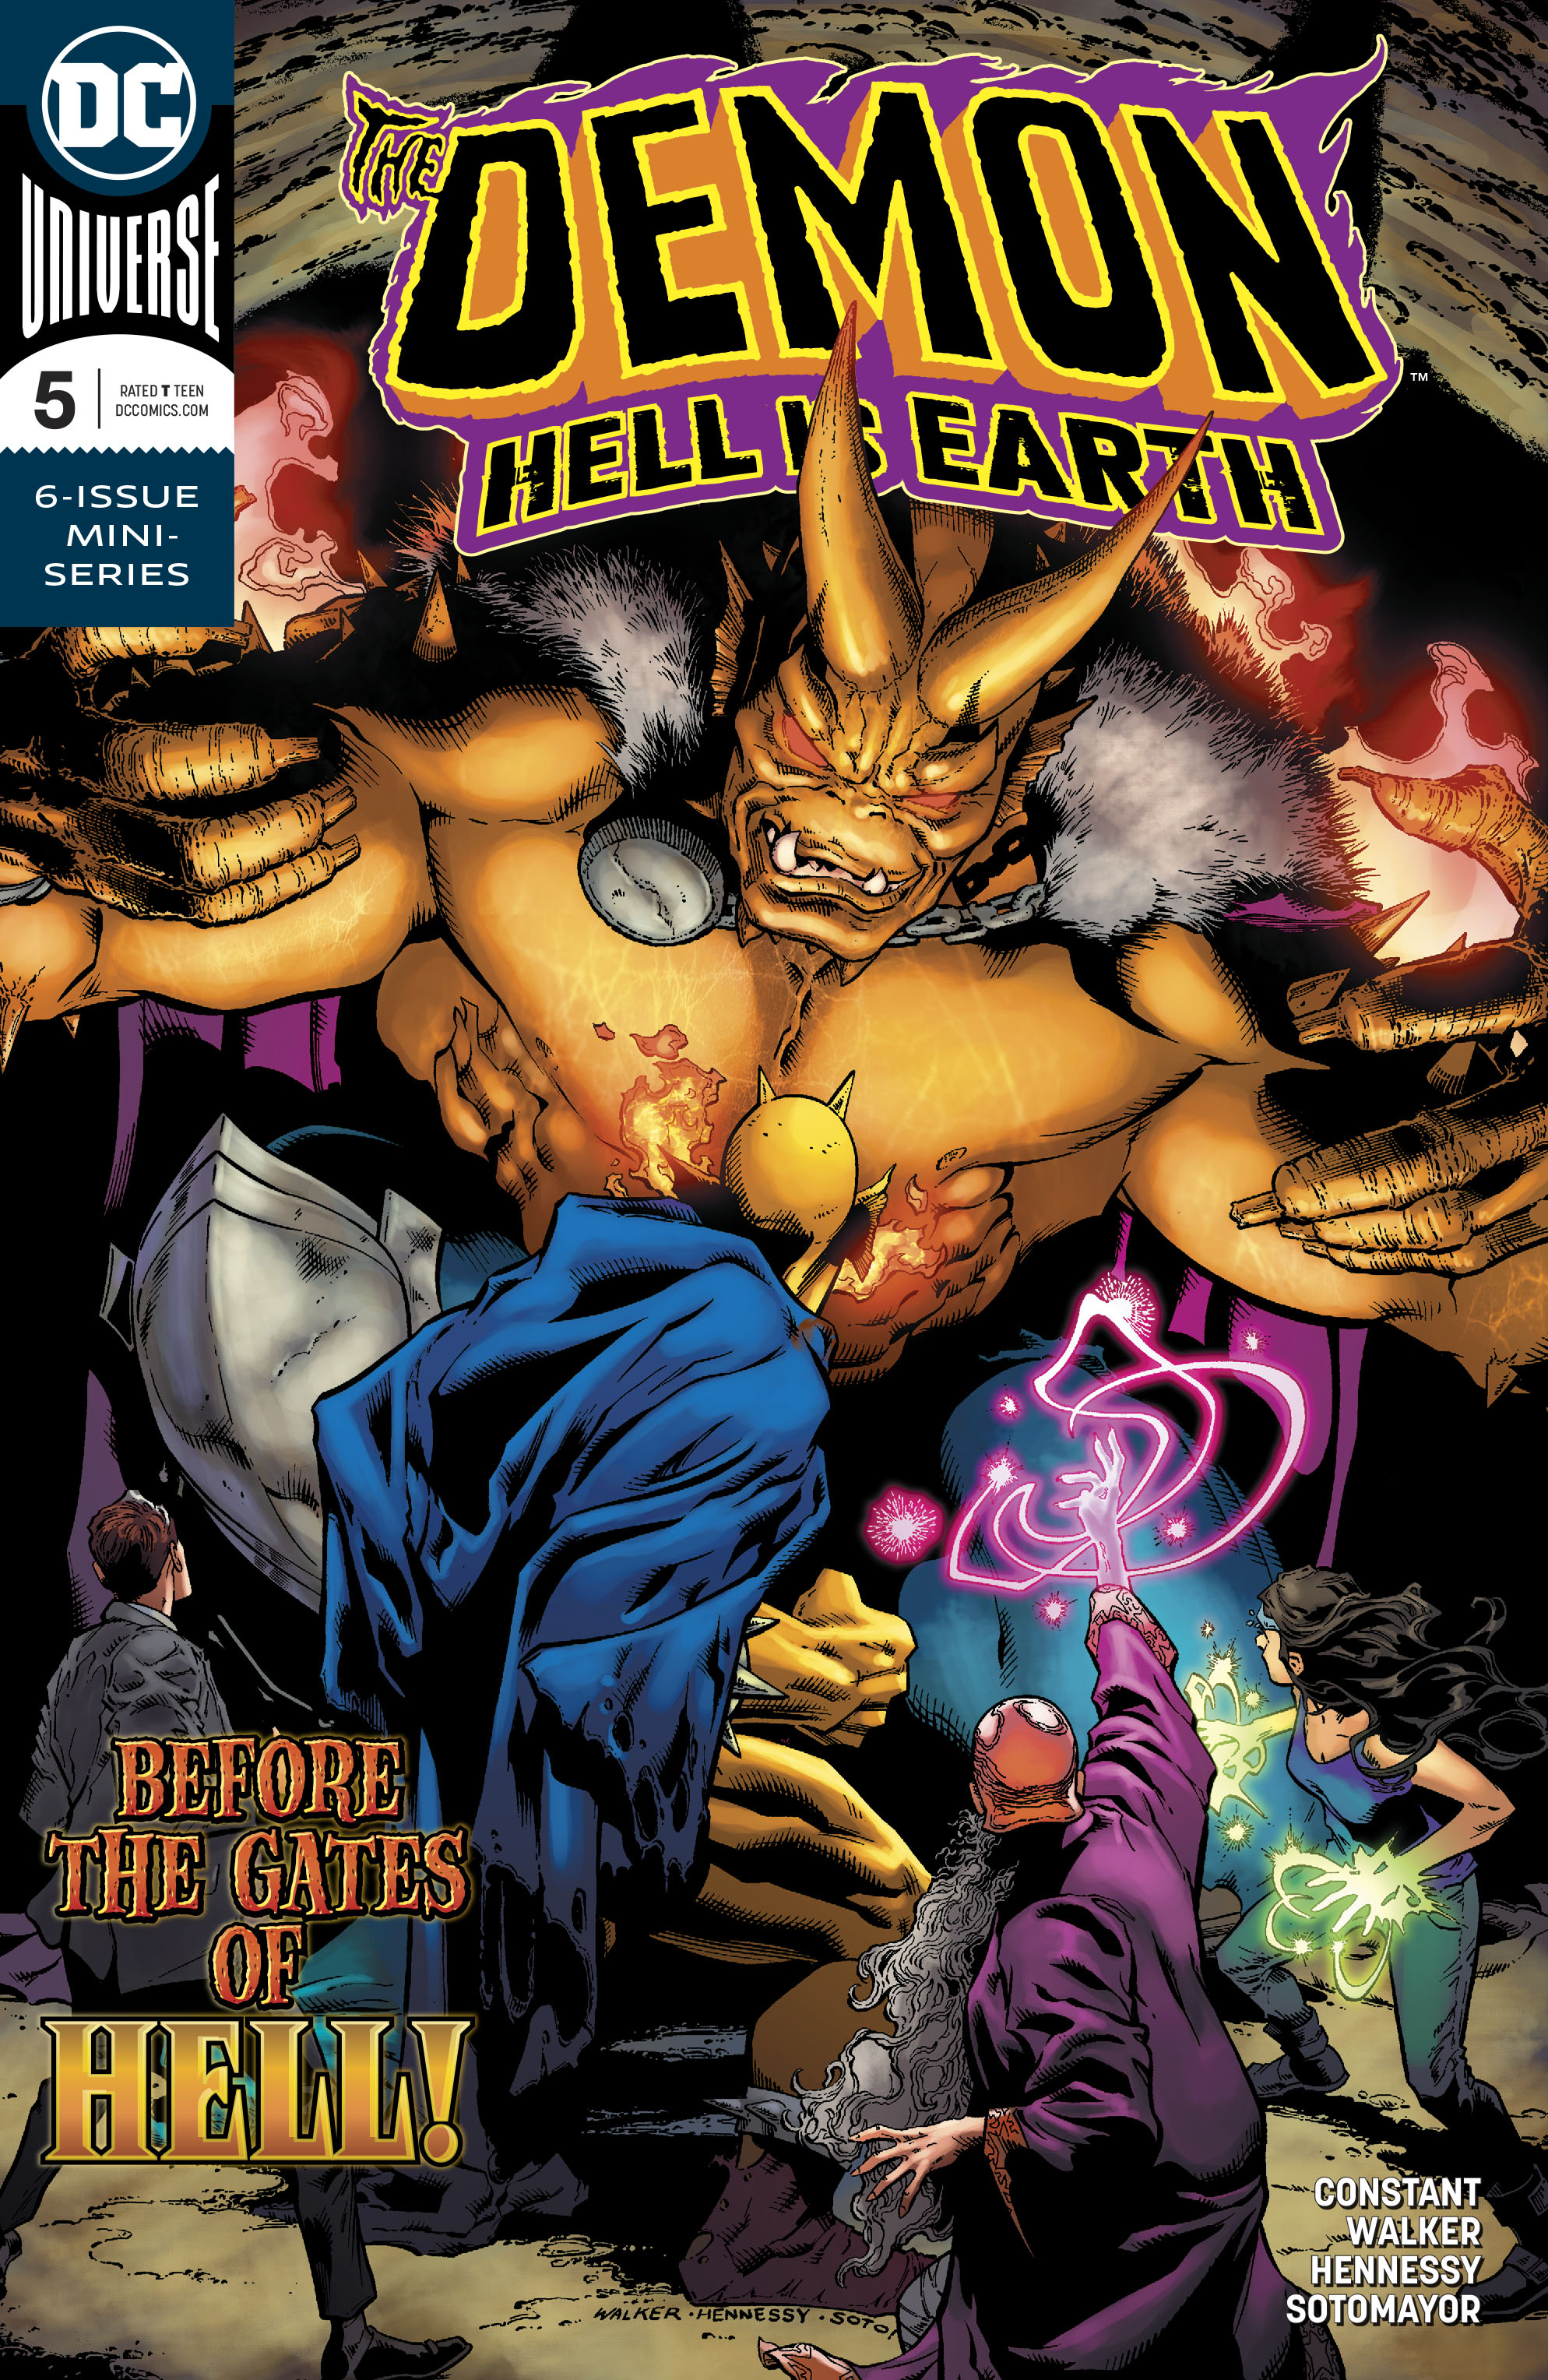 DEMON HELL IS EARTH #5 (OF 6)